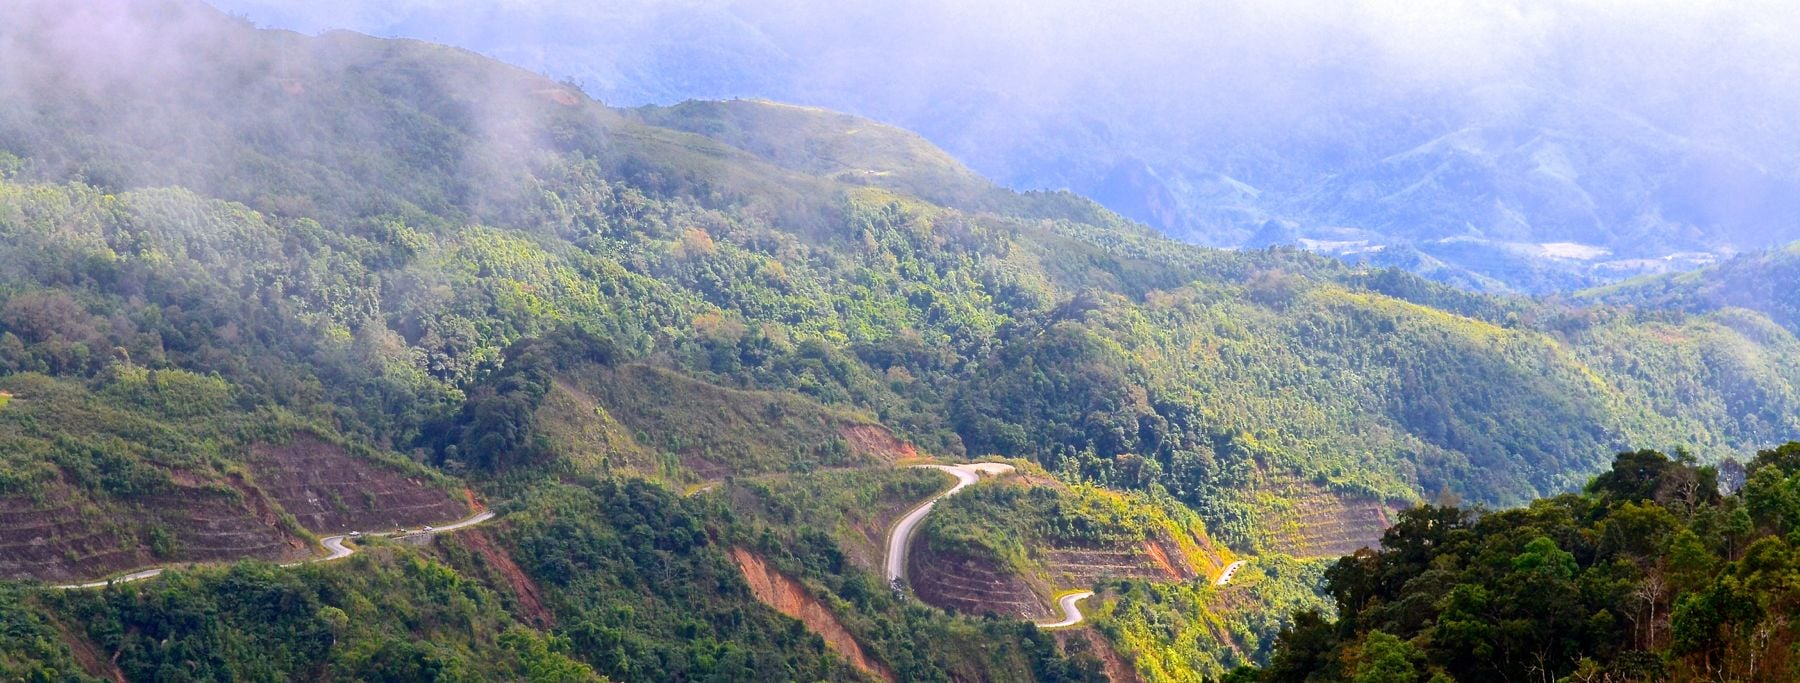 The stunning mountain path through the clouds -Laos